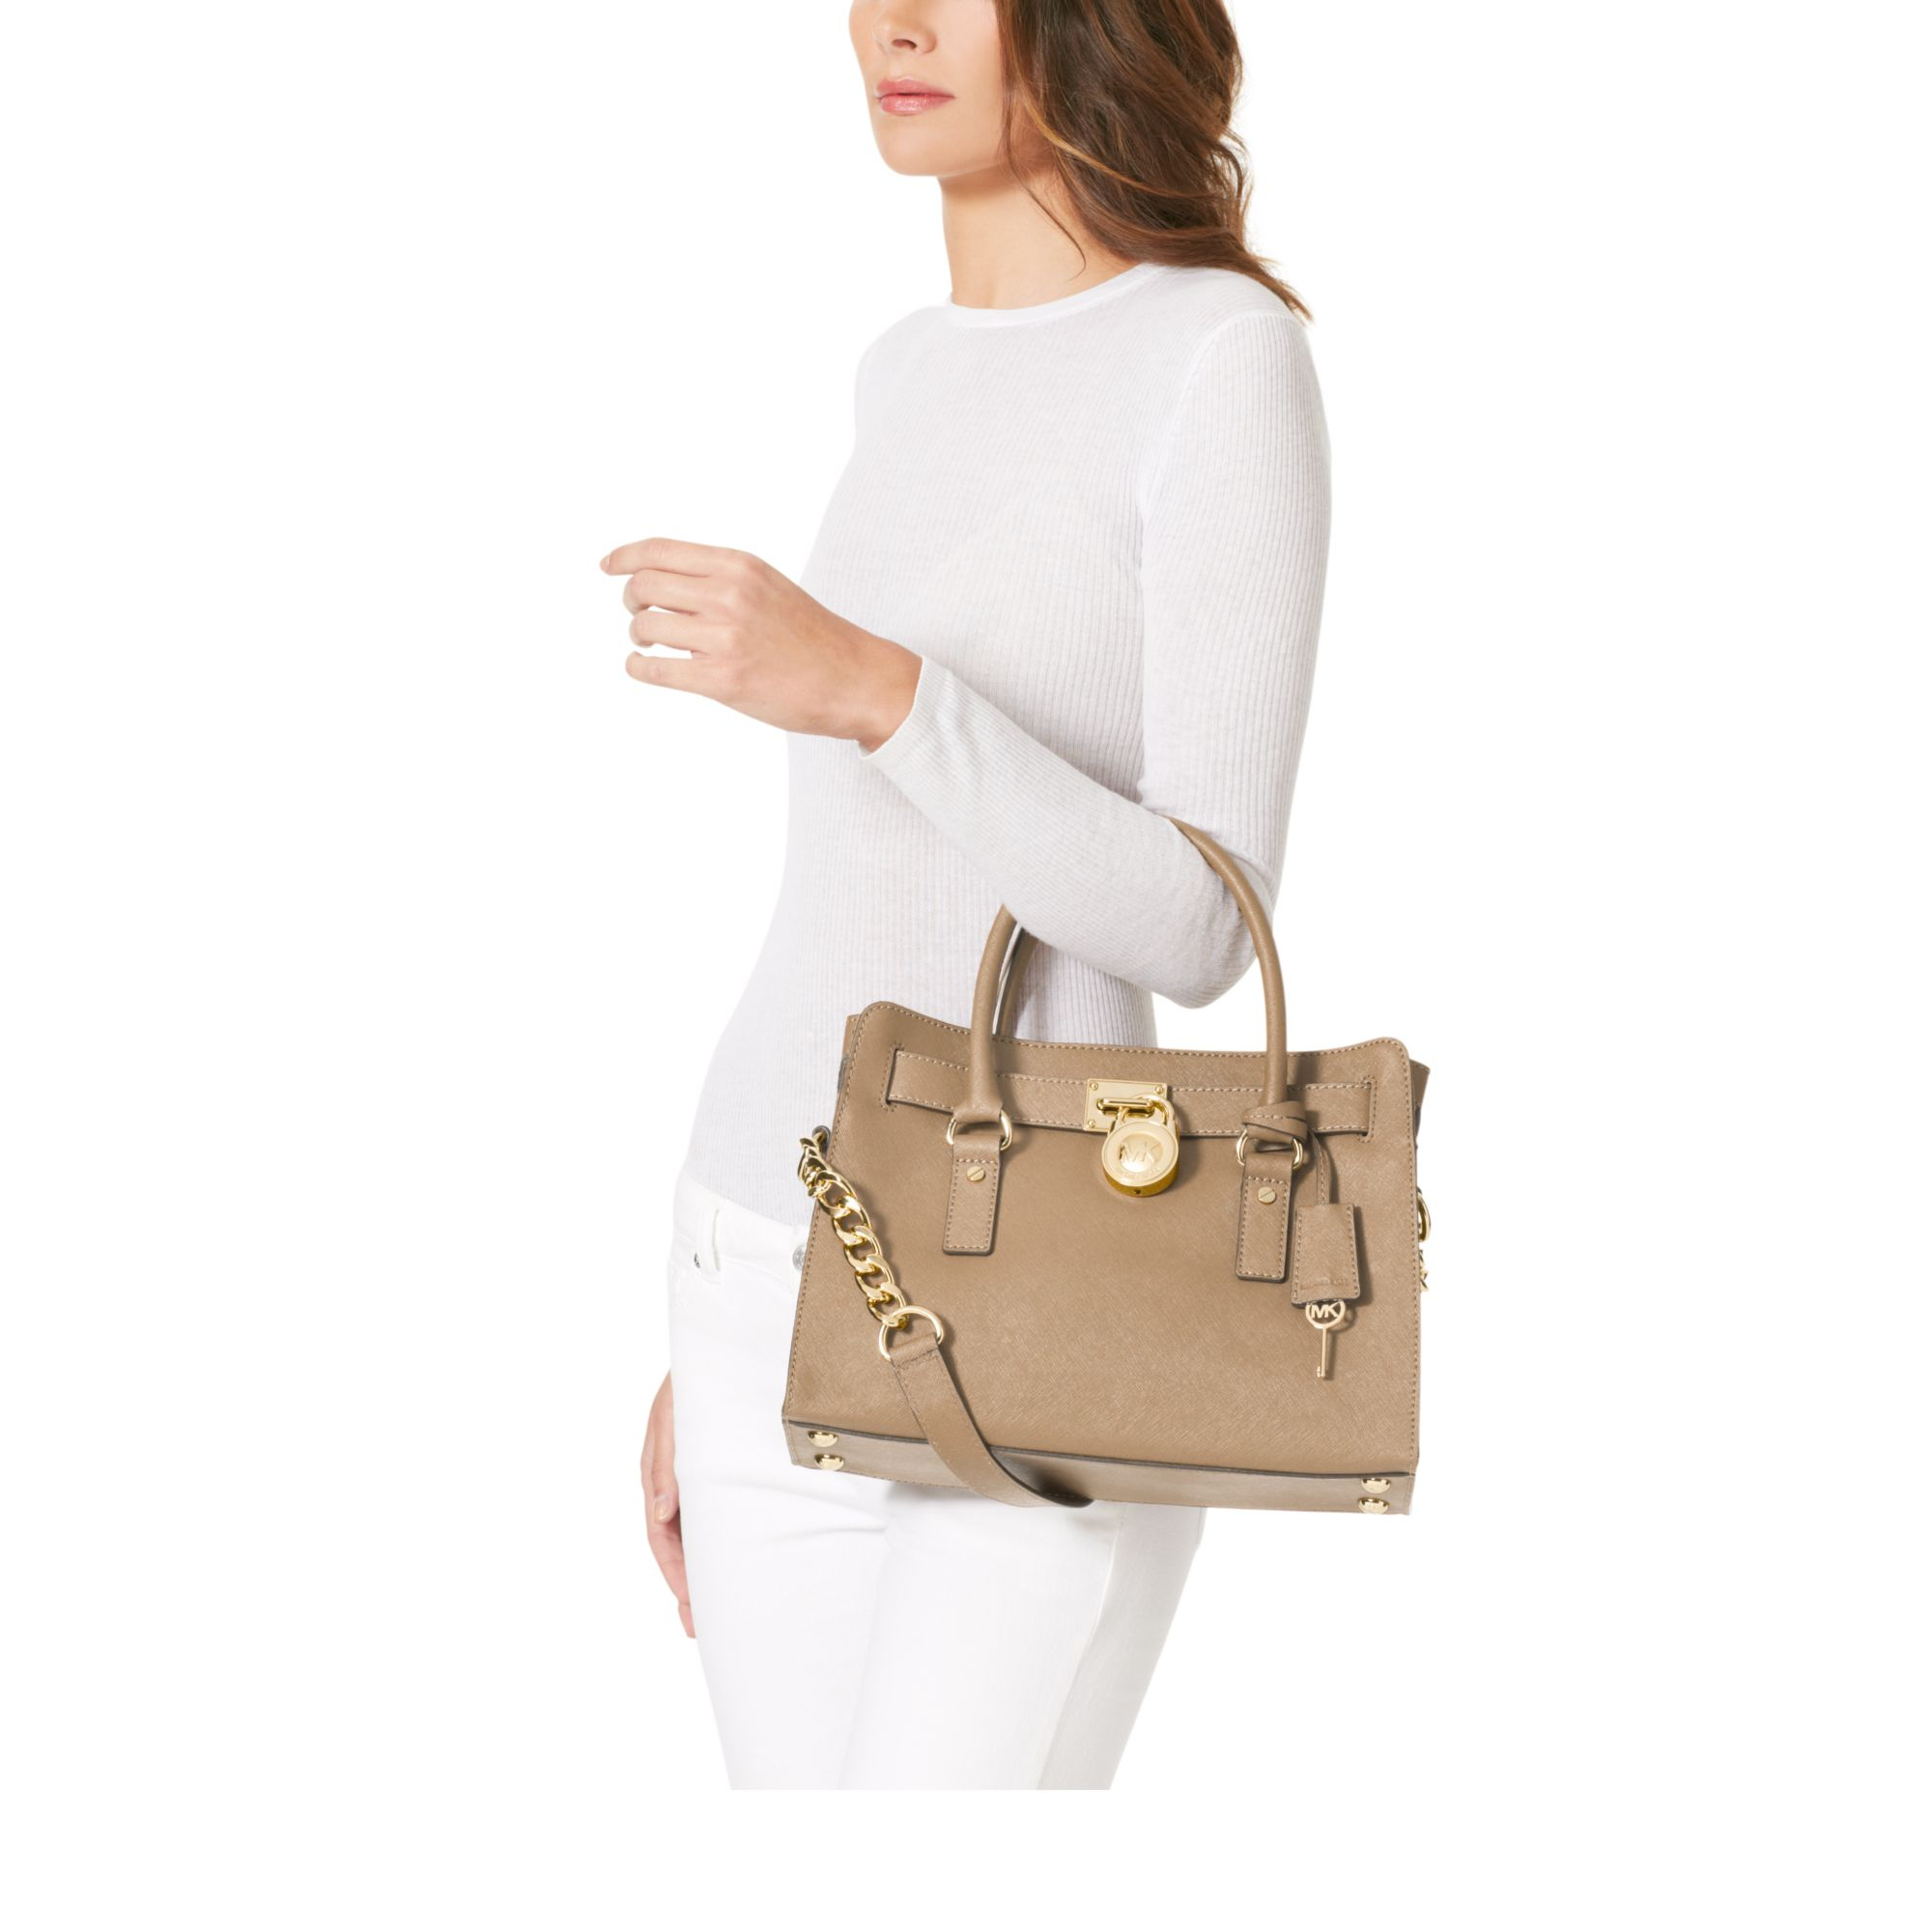 077439432f1486 netherlands lyst michael kors hamilton saffiano leather medium satchel in  natural cdc04 d43e7